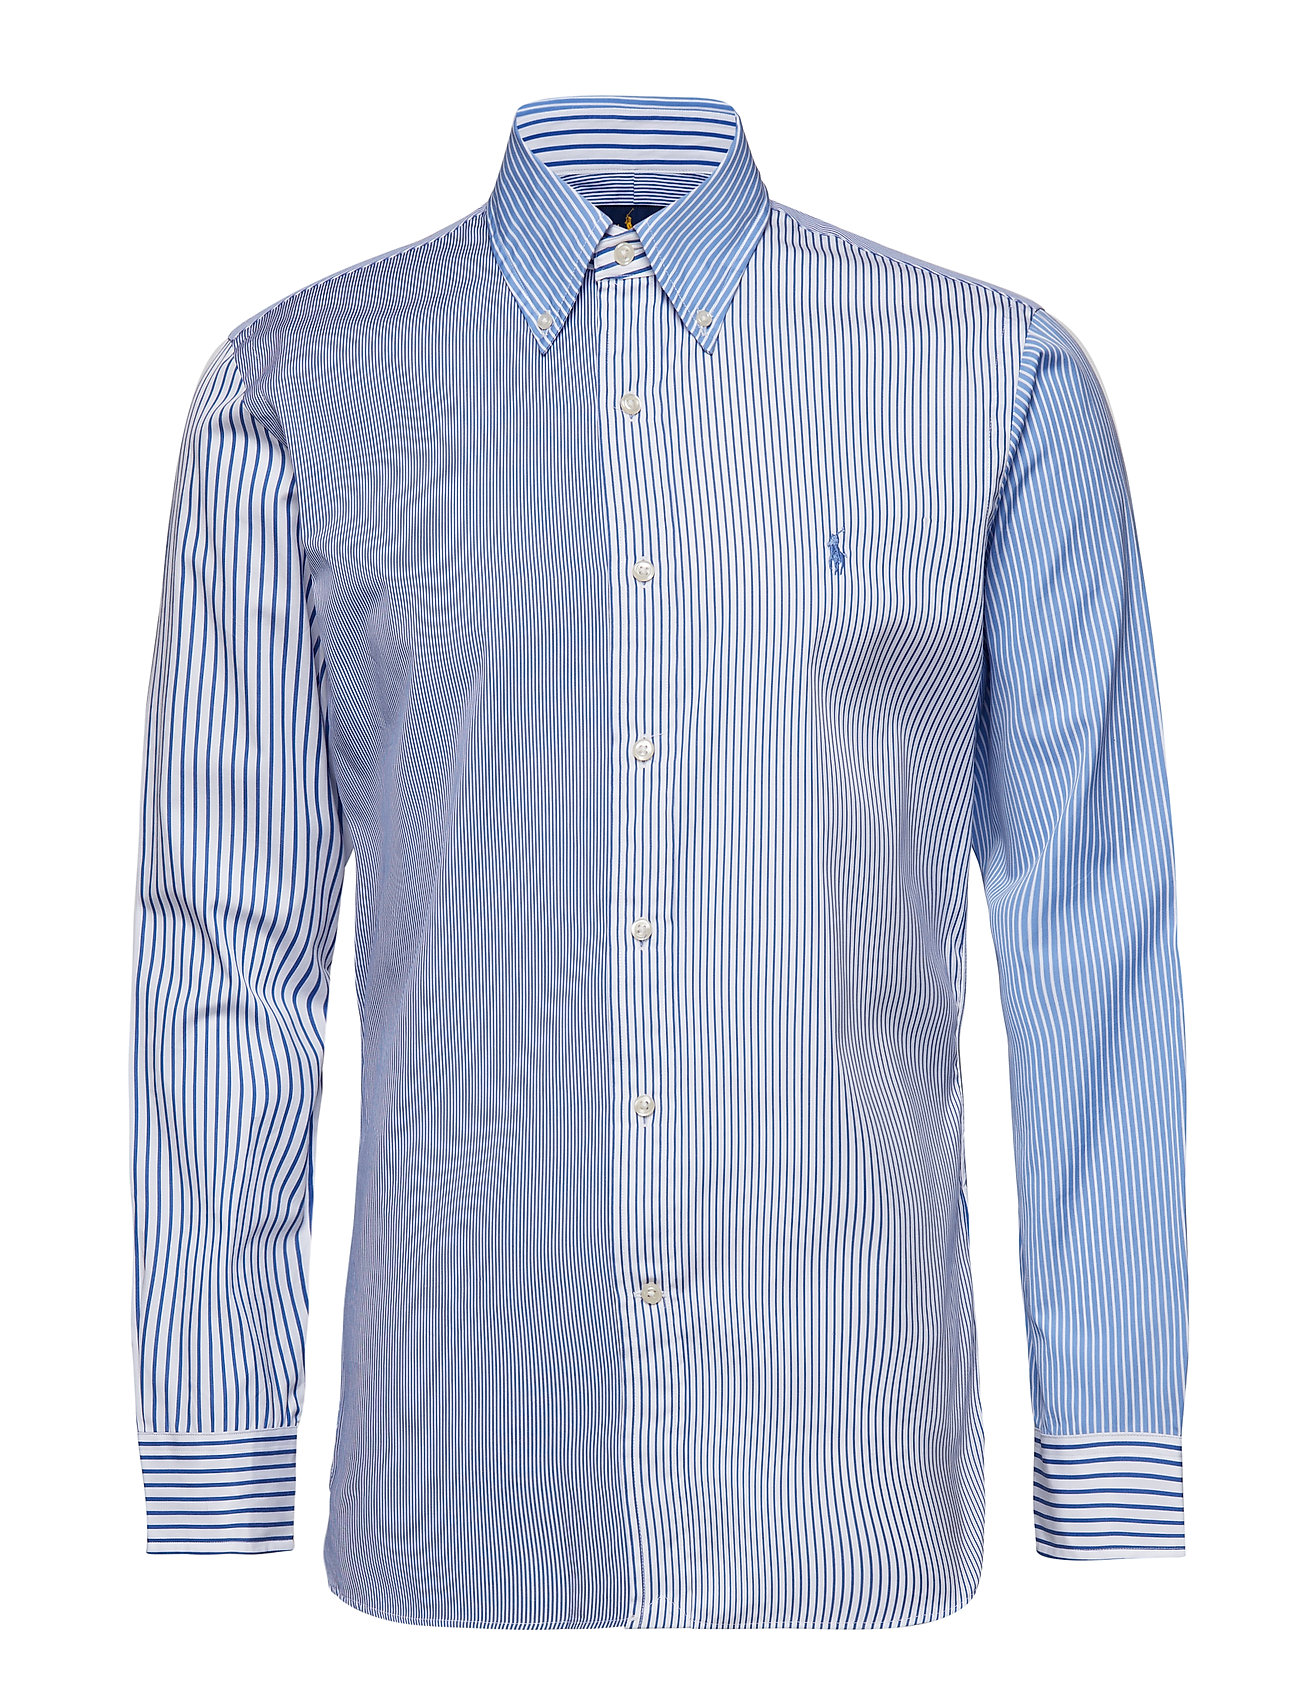 Polo Ralph Lauren S HBD PPC NK-DRESS SHIRT